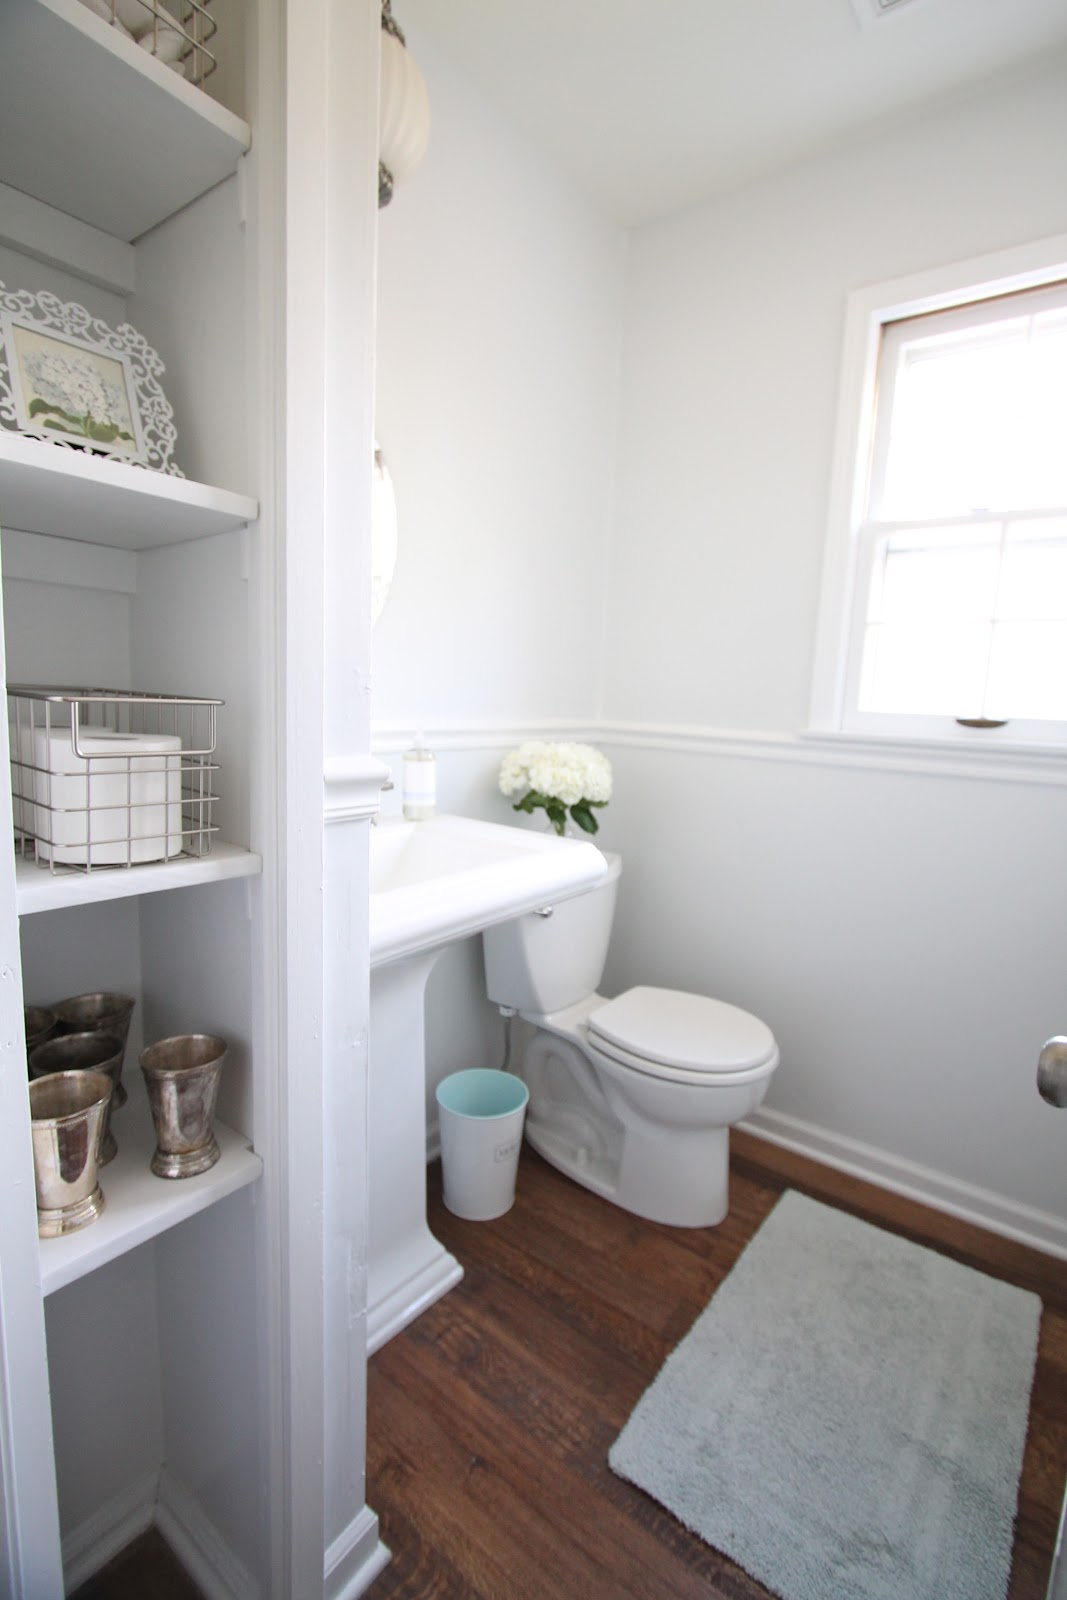 DIY Bathroom Remodel Julie Blanner - Economical bathroom renovations